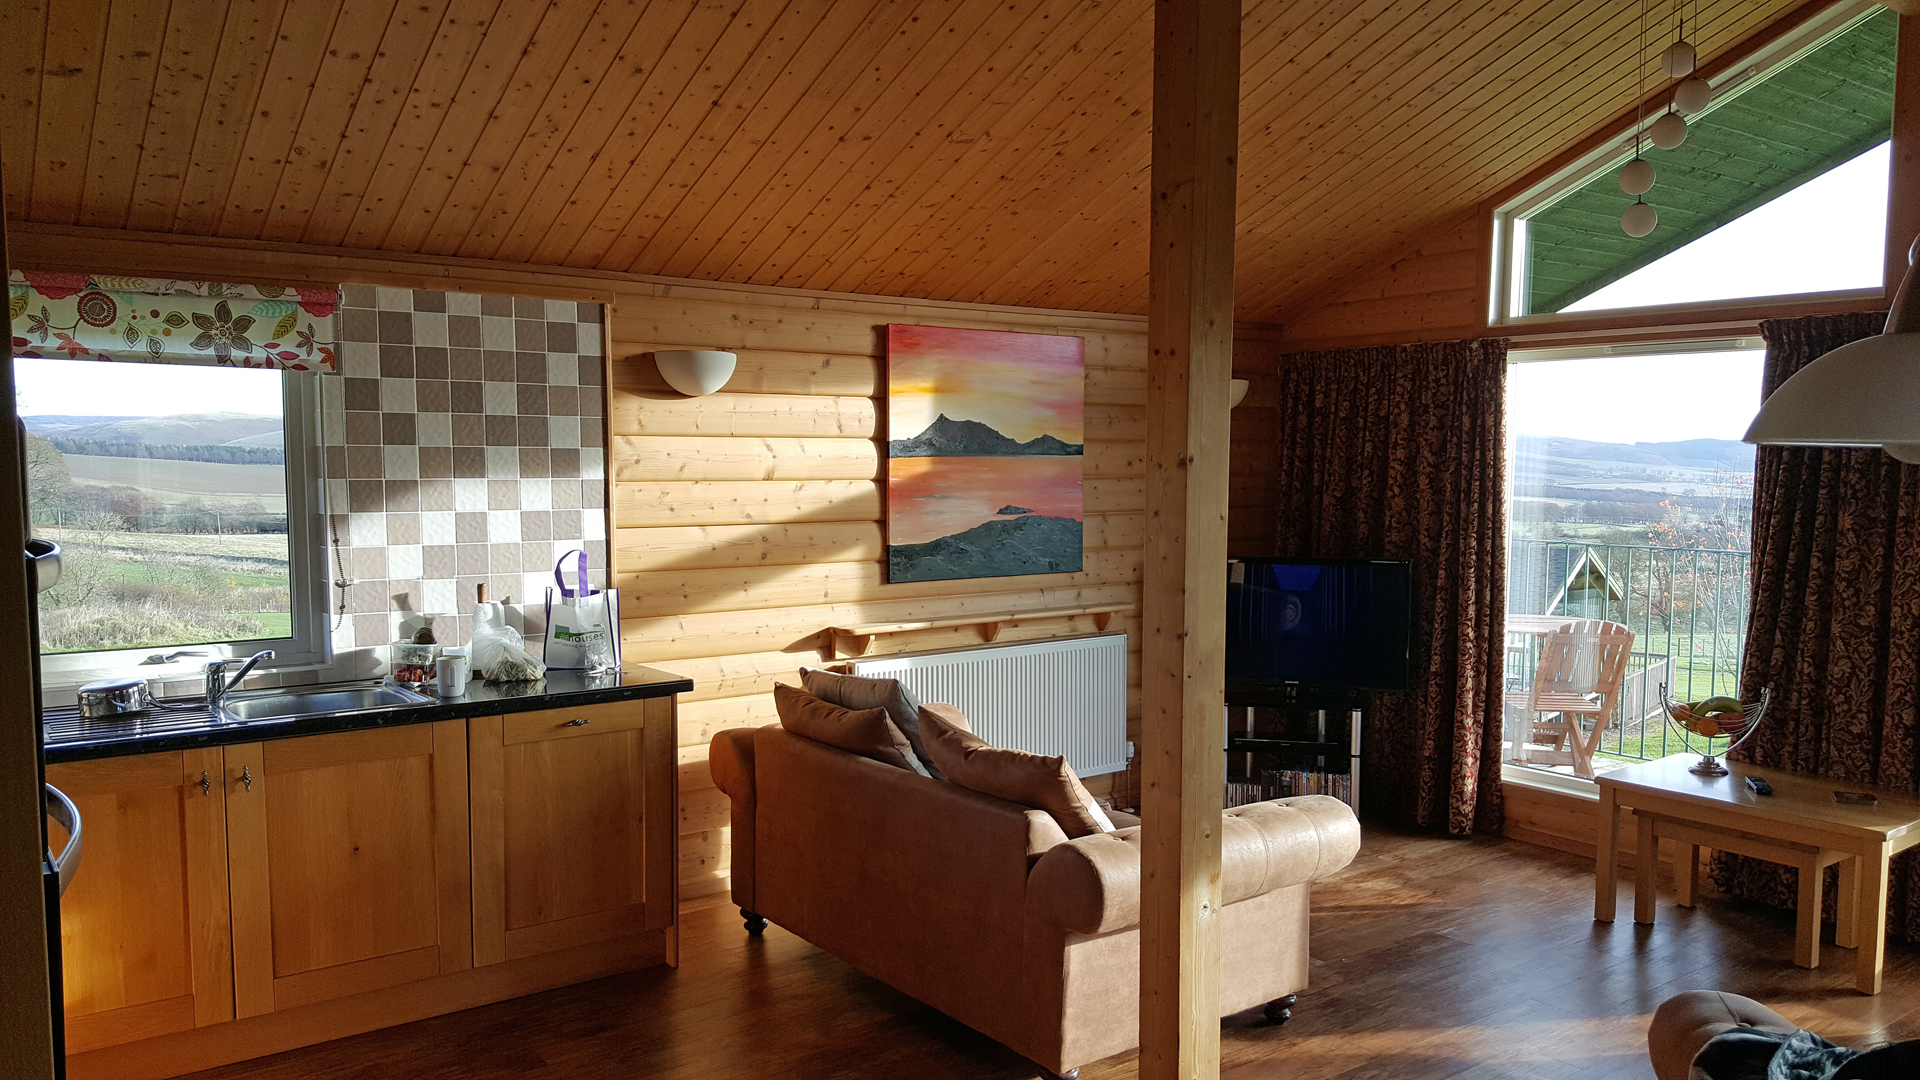 Open plan kitchen and living area in The Ramsay at Airhouses Luxury Self Catering Lodges in Scottish Borders